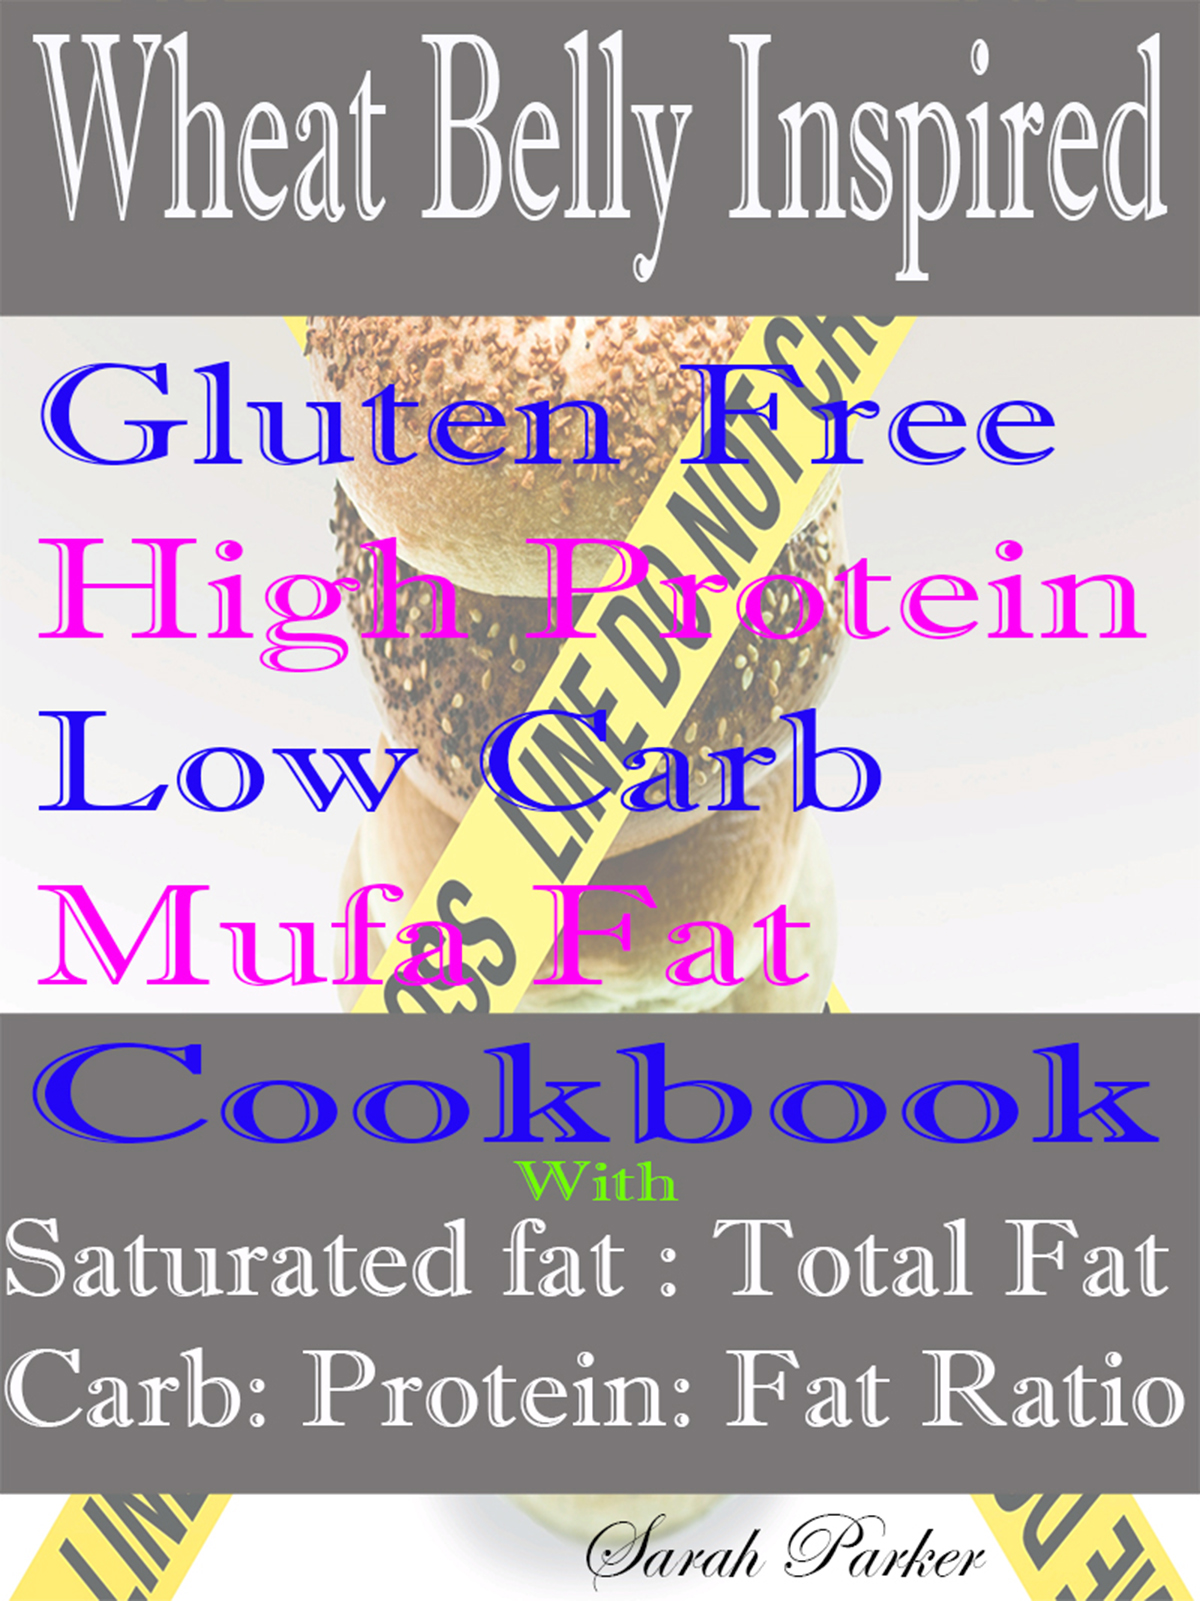 Wheat Belly Inspired Gluten Free High Protein Low Carb Mufa Fat Cookbook With Saturated Fat: Total Fat Carb: Protein: Fat Ratio By: Sarah Parker